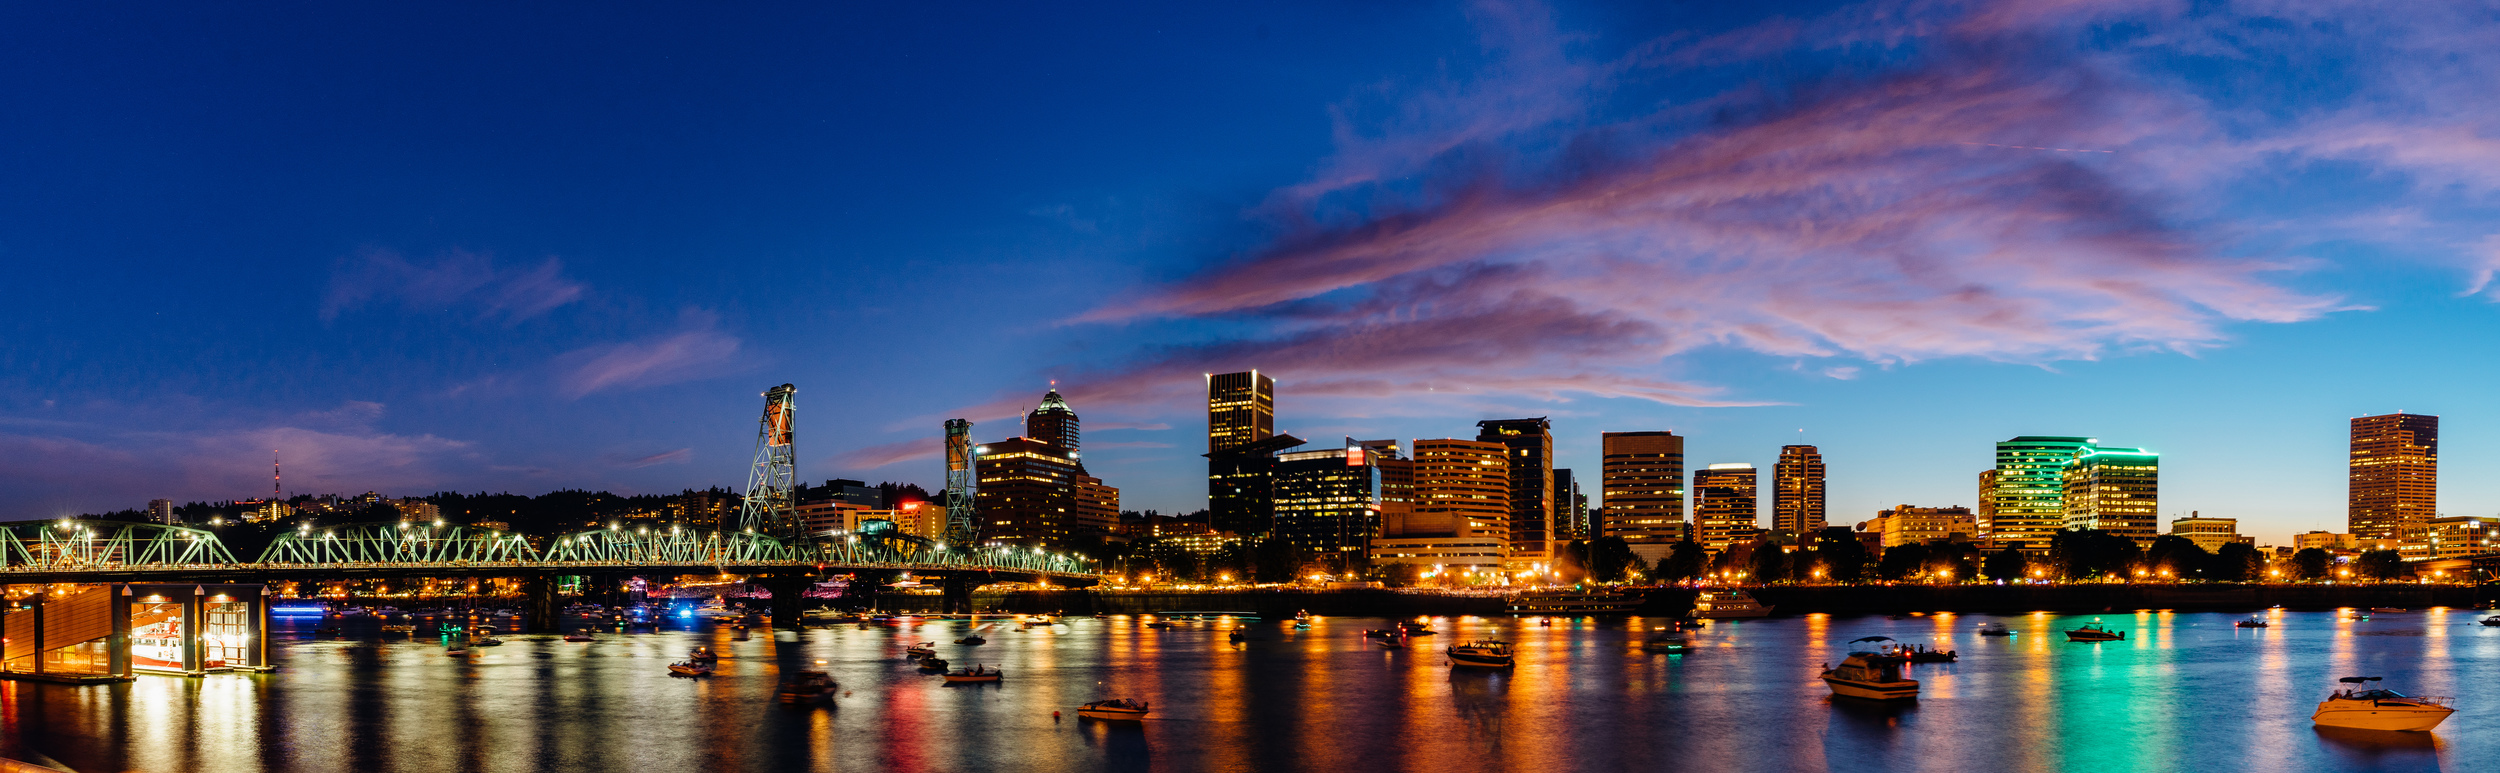 A panoramic view of downtown  Portland  at dusk from across the Willamette River